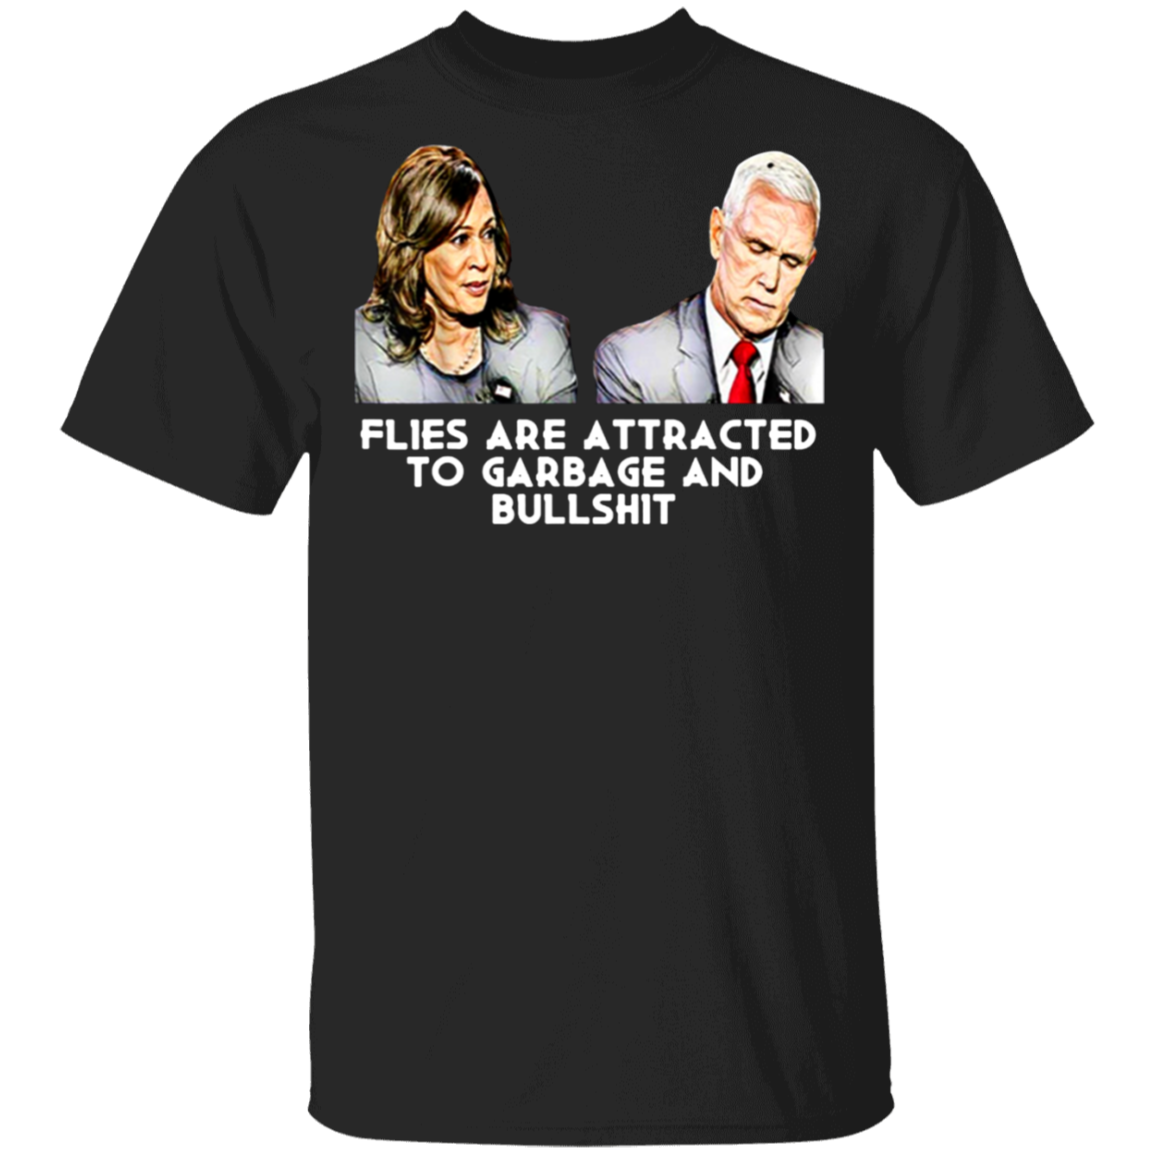 Pence Fly Shirt Flies Are Attracted To Garbage And Bullshit T-Shirt For Biden Harris Voters